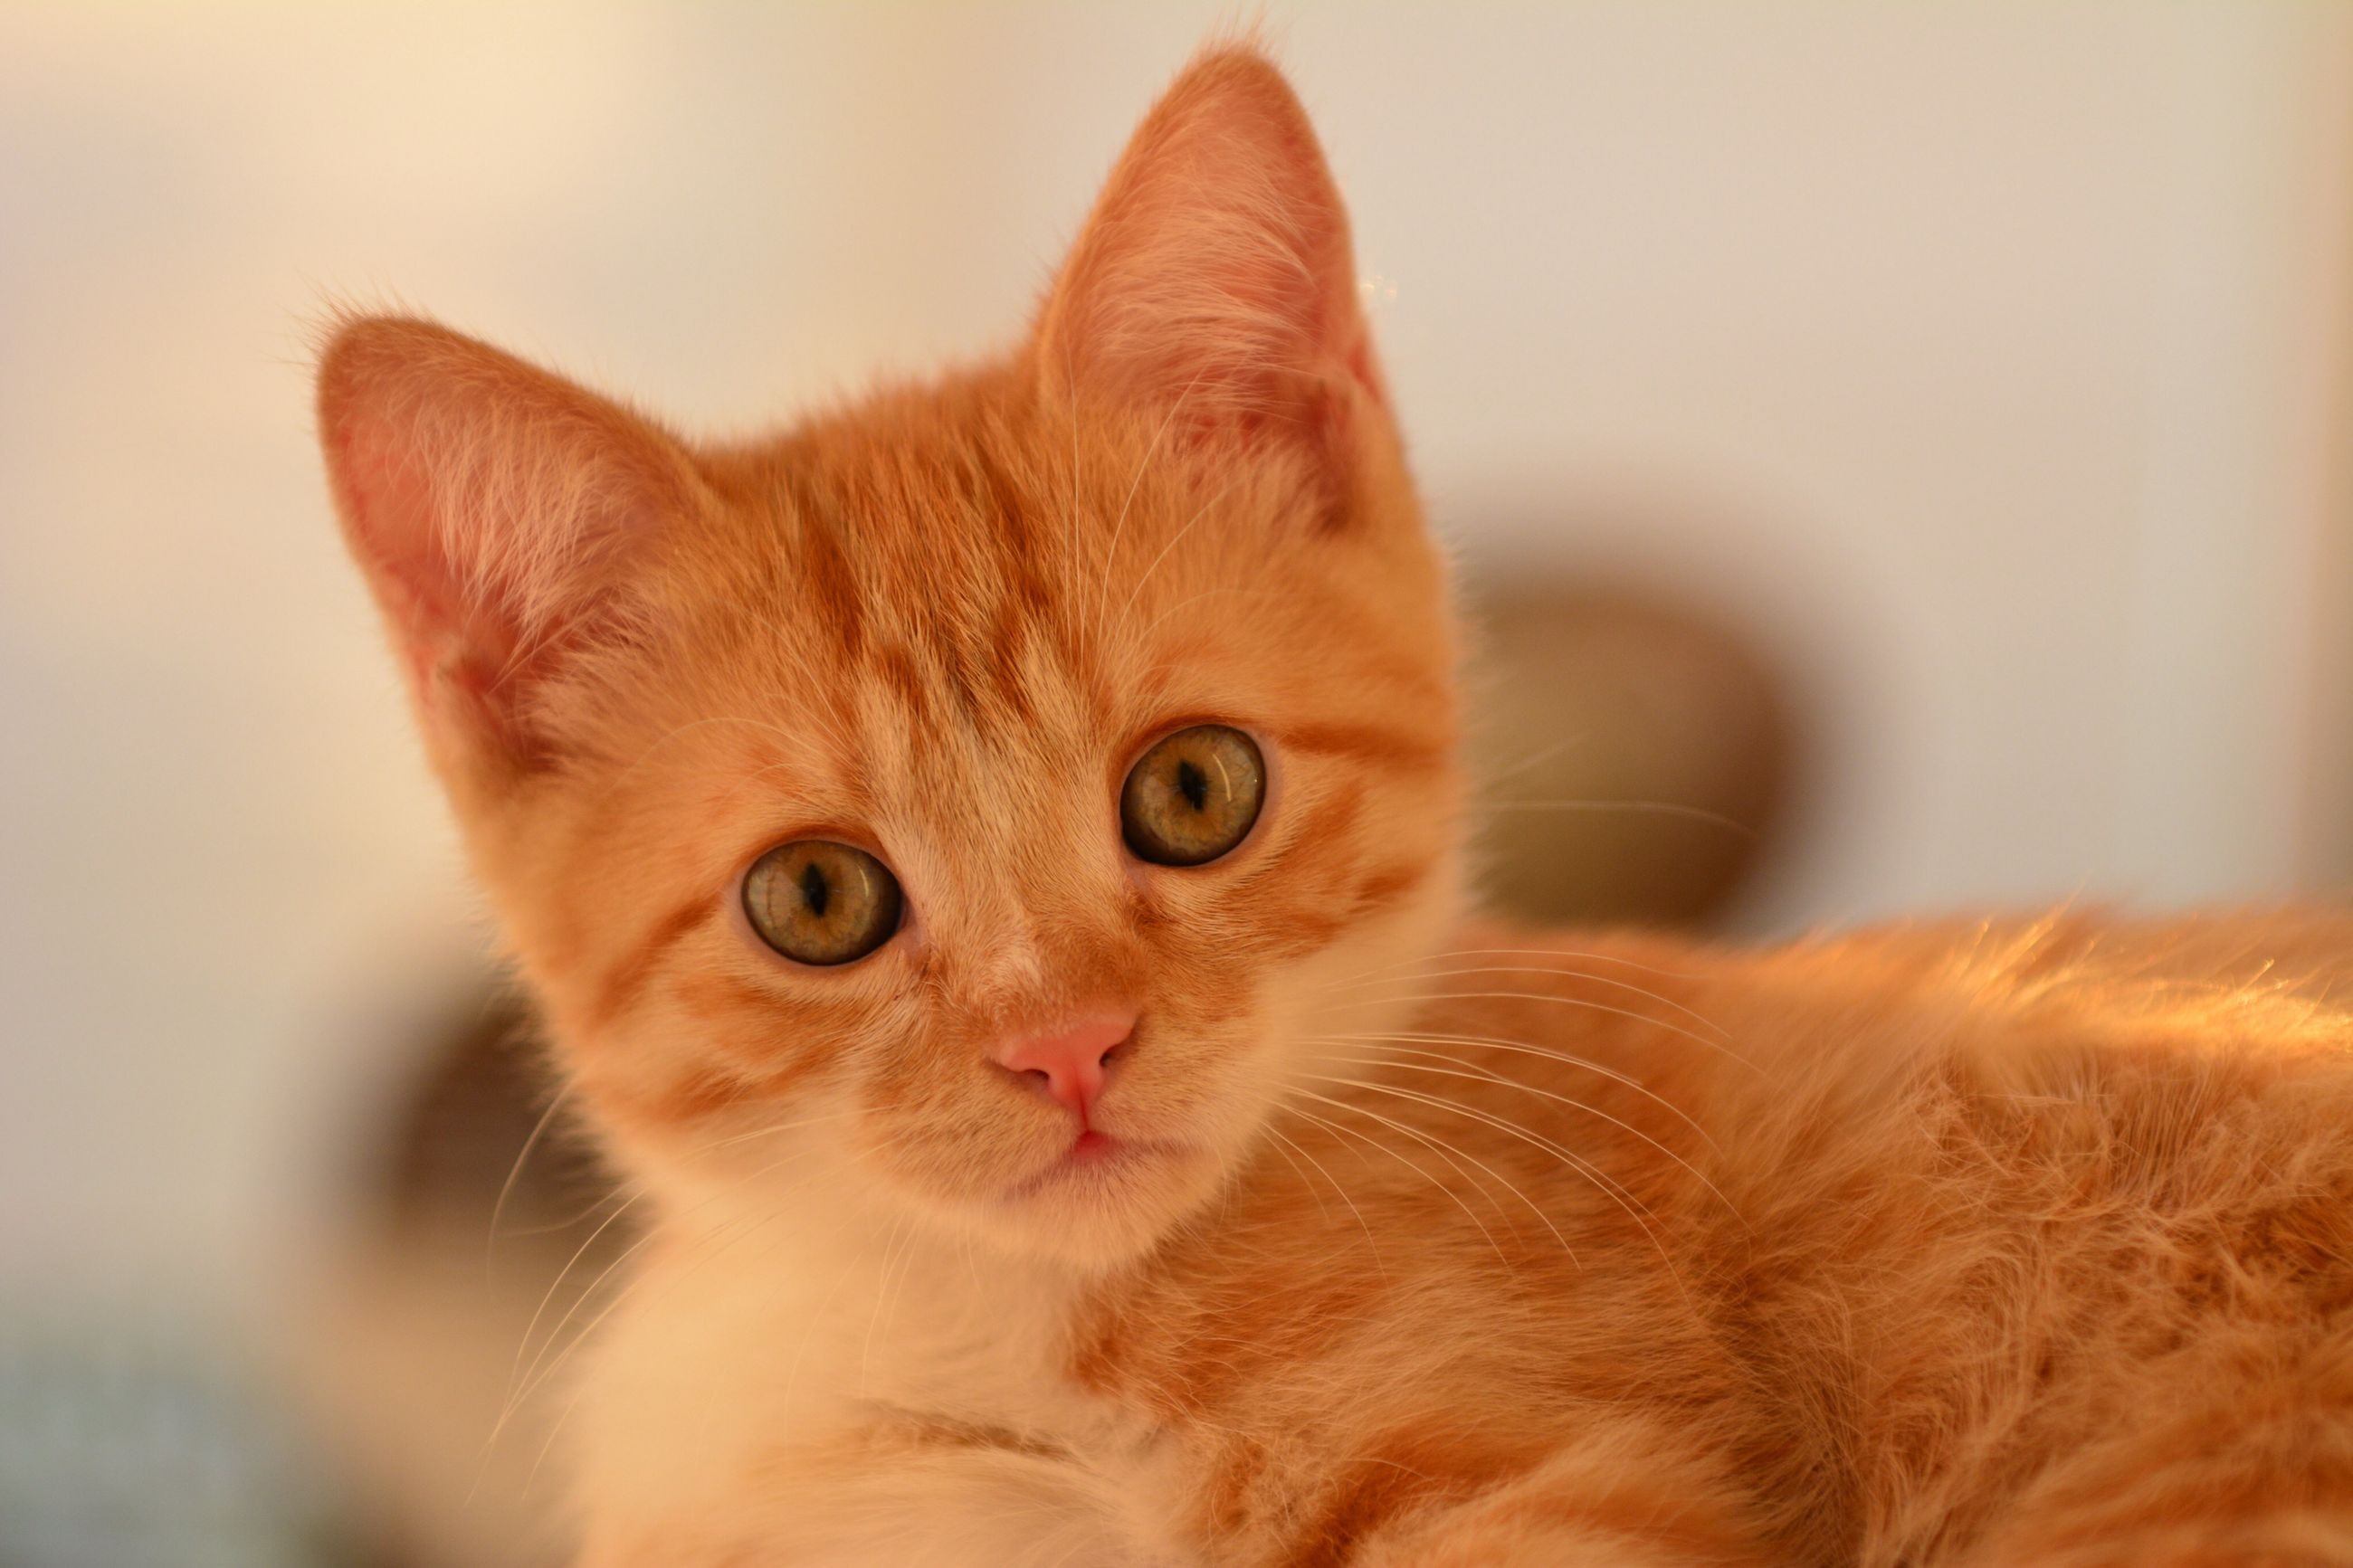 domestic cat, pets, feline, domestic animals, animal themes, one animal, mammal, cat, looking at camera, whisker, portrait, ginger cat, focus on foreground, indoors, no people, close-up, day, persian cat